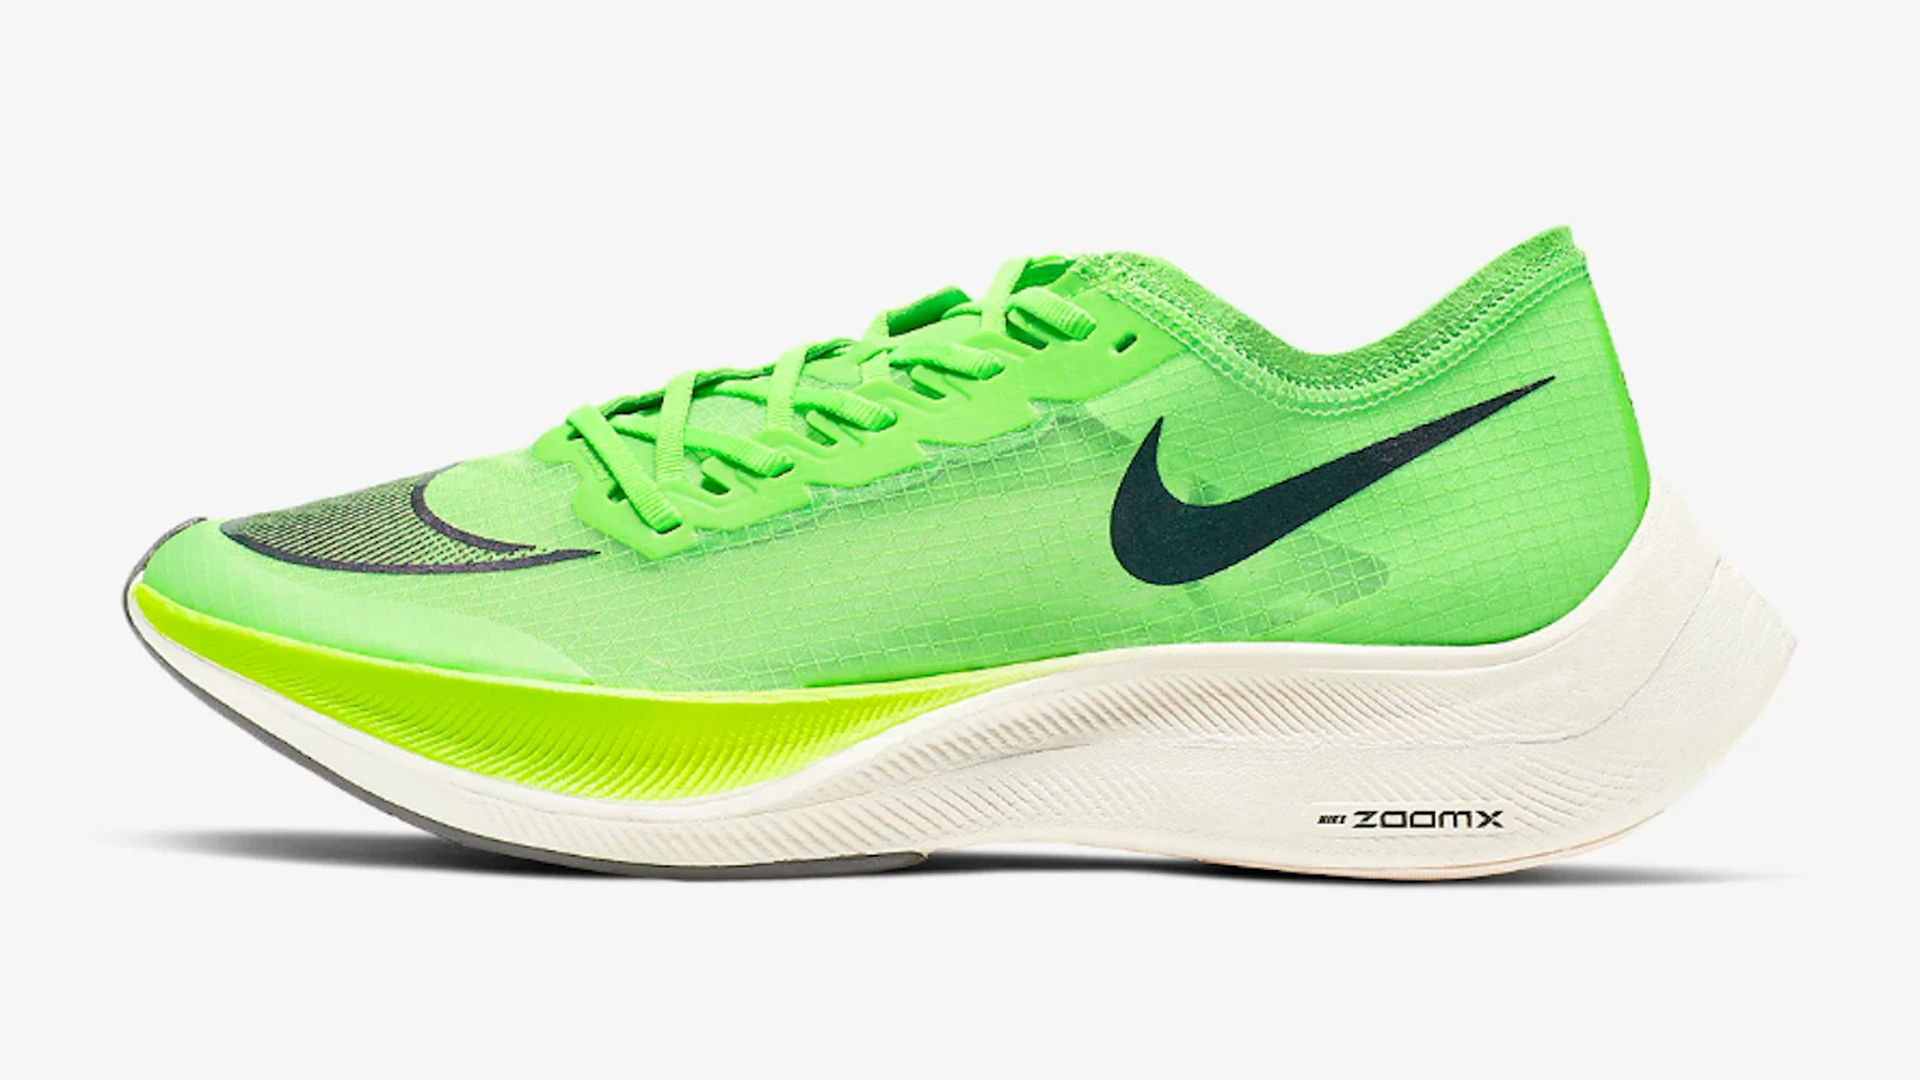 The Nike ZoomX Vaporfly